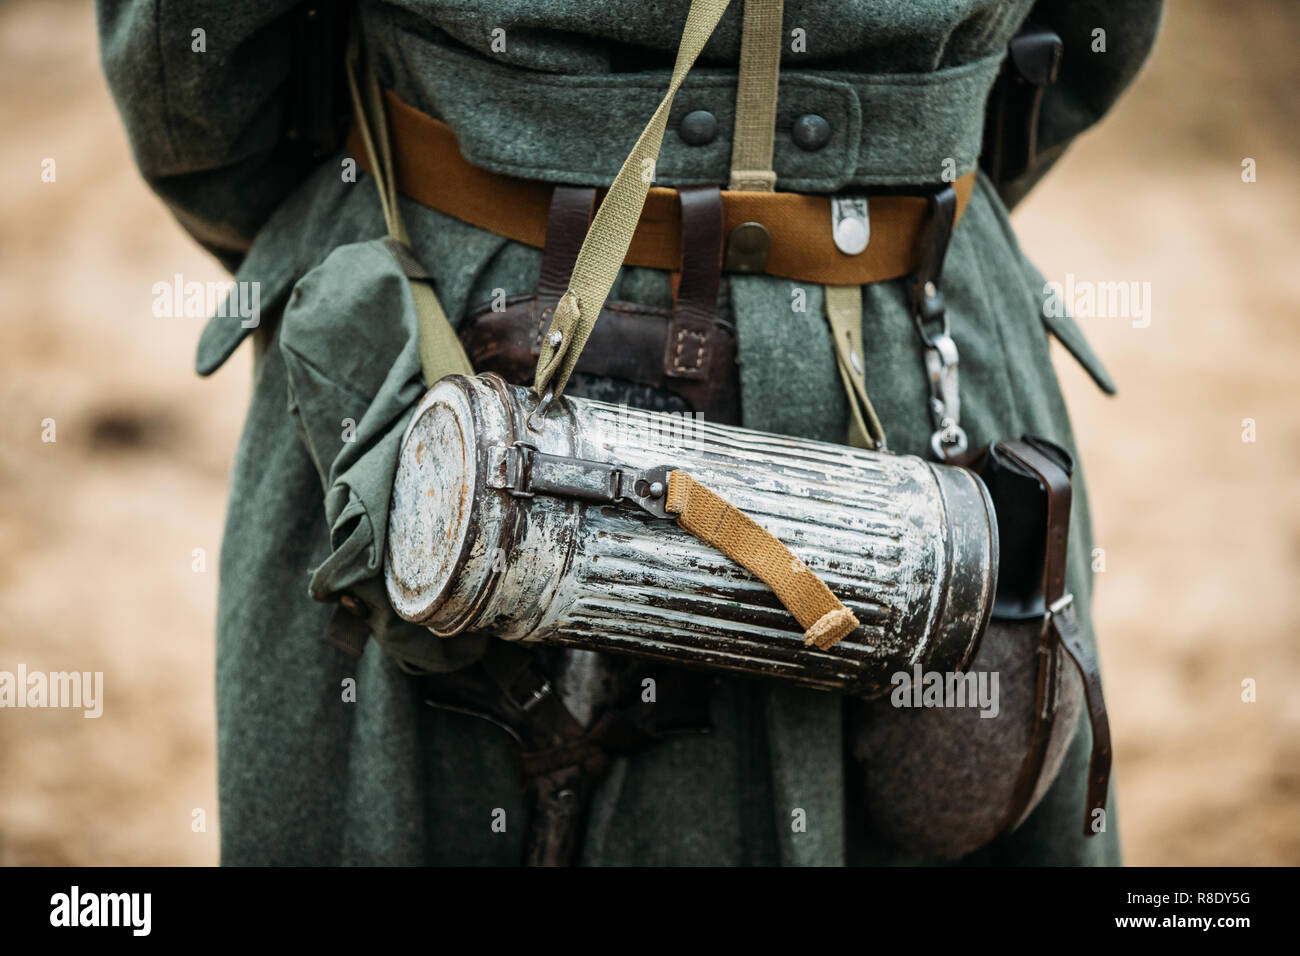 German Wehrmacht Infantry Soldier's Military Equipment Of World War II. Anti-gas Case Or Gas mask Storage On Soldier. - Stock Image